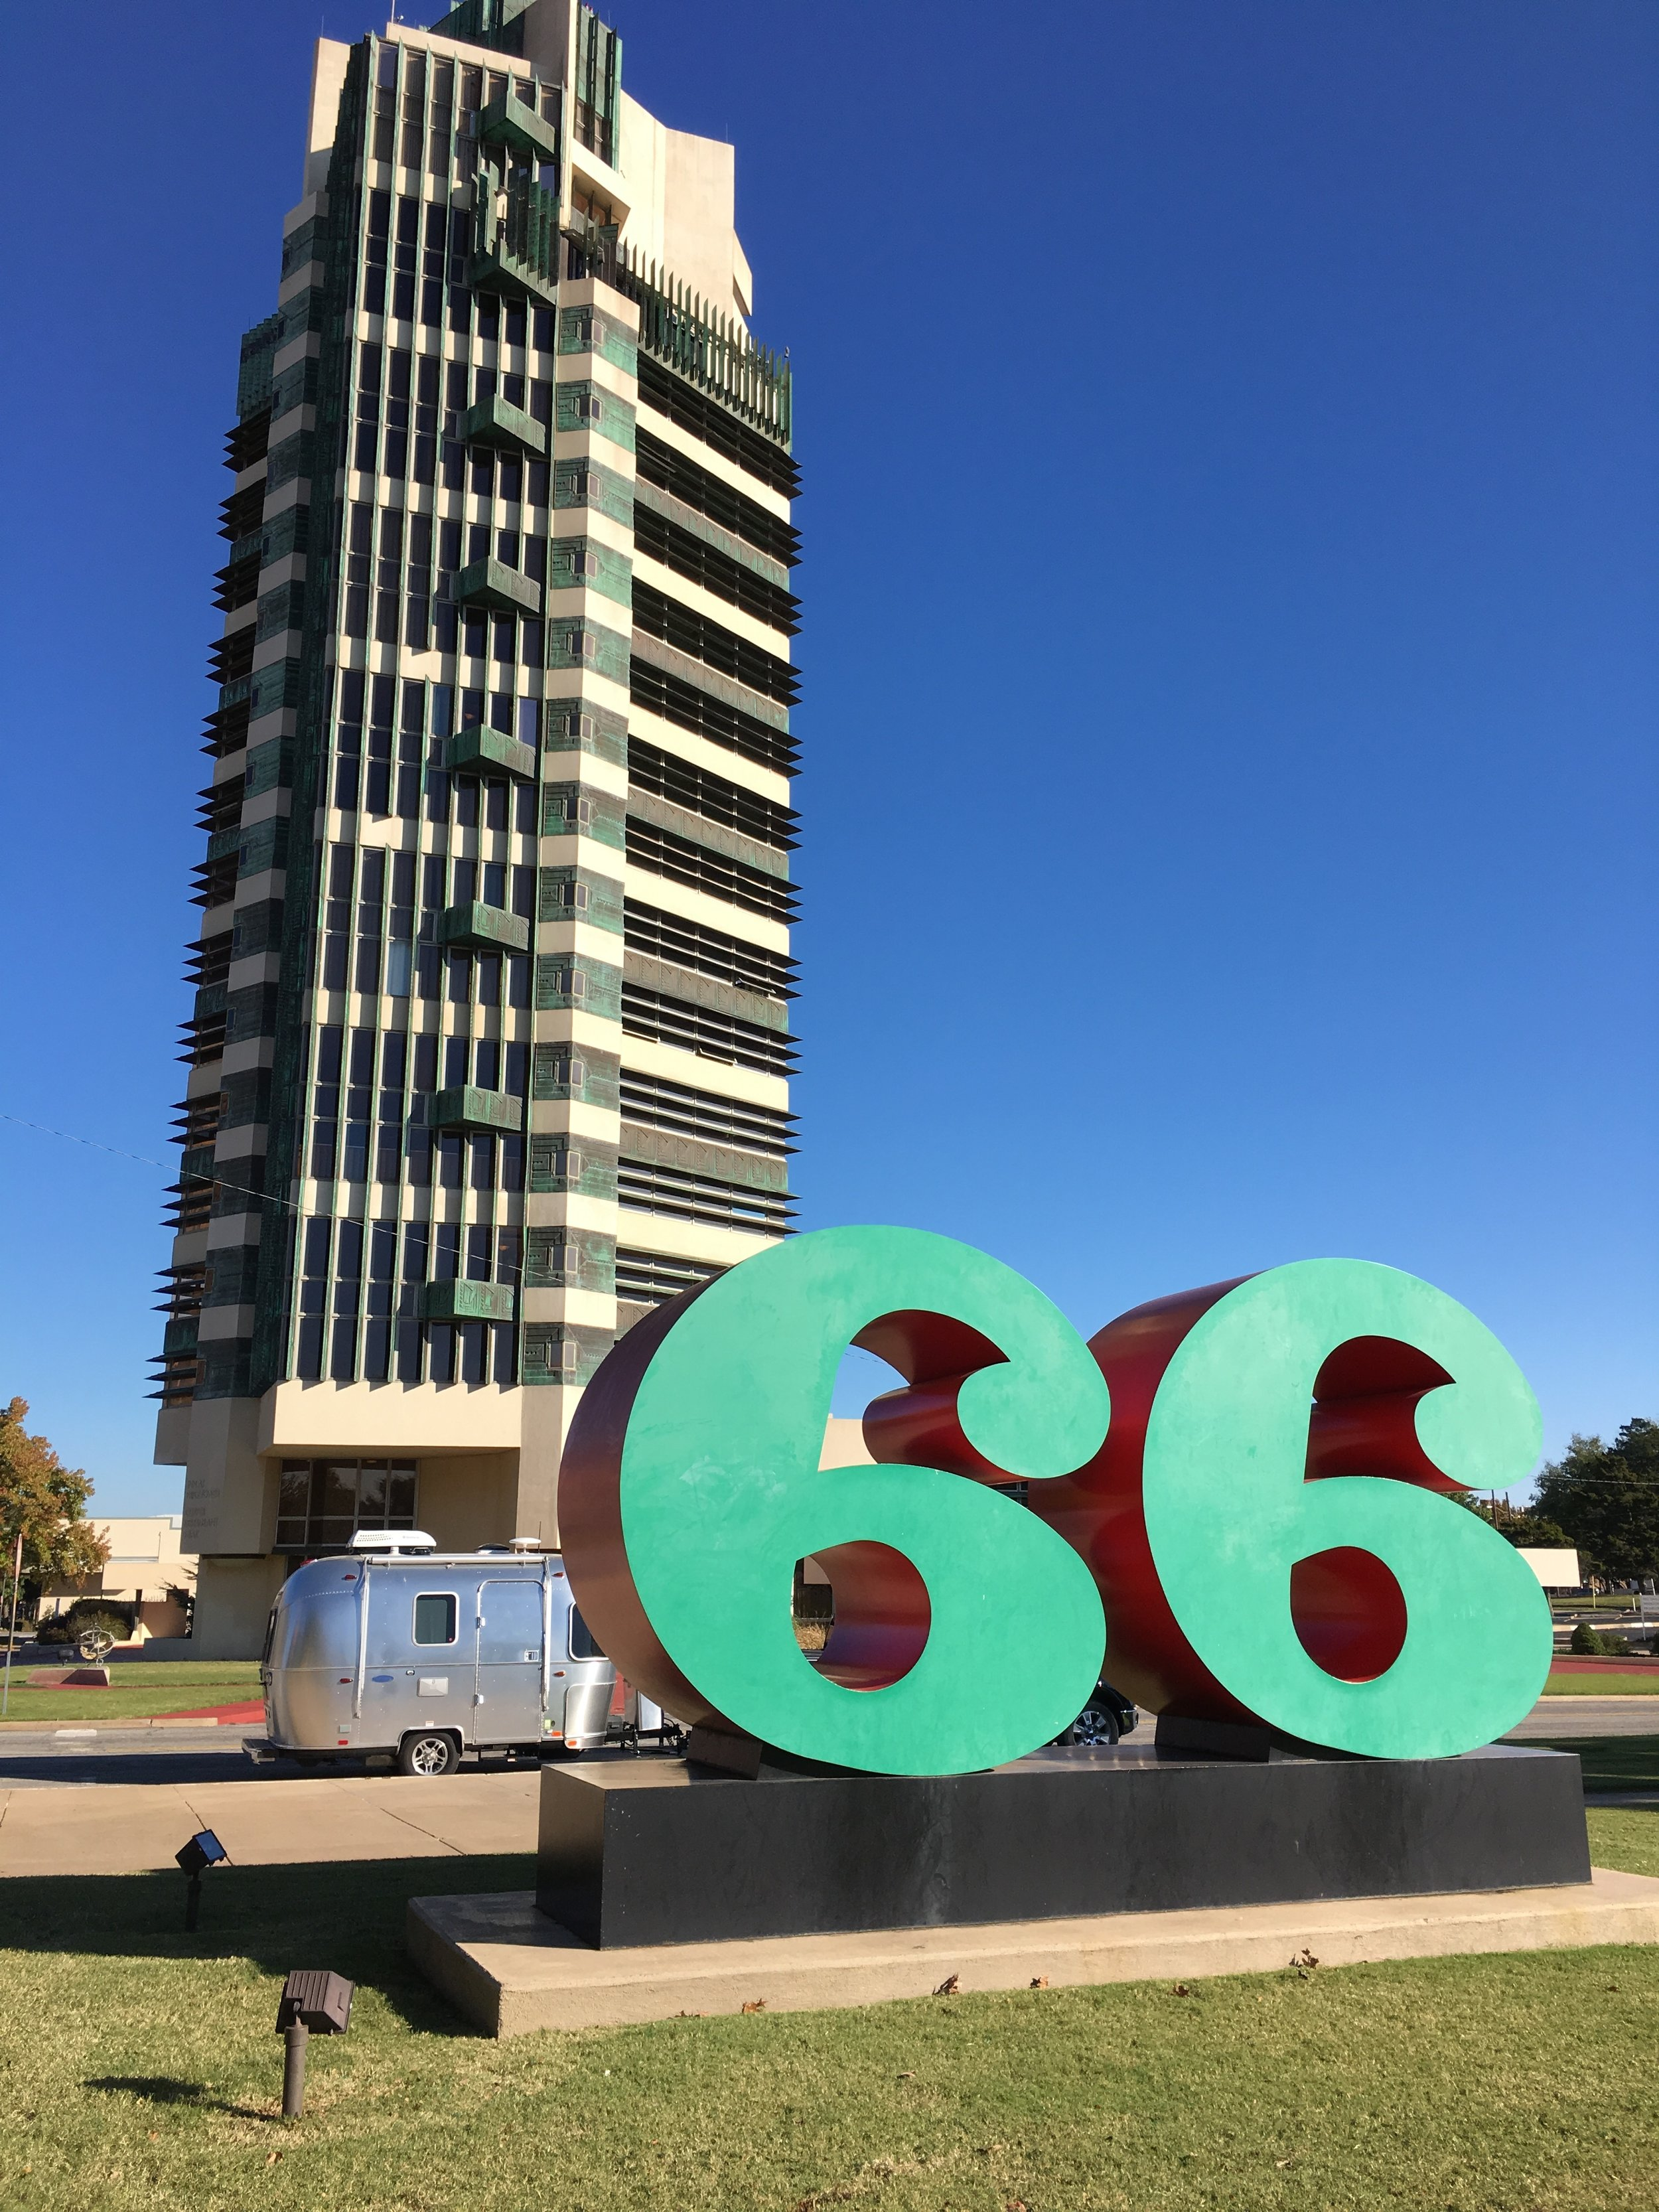 Iconic design: Bambi and the Price Tower in Bartlesville, designed by Frank Lloyd Wright